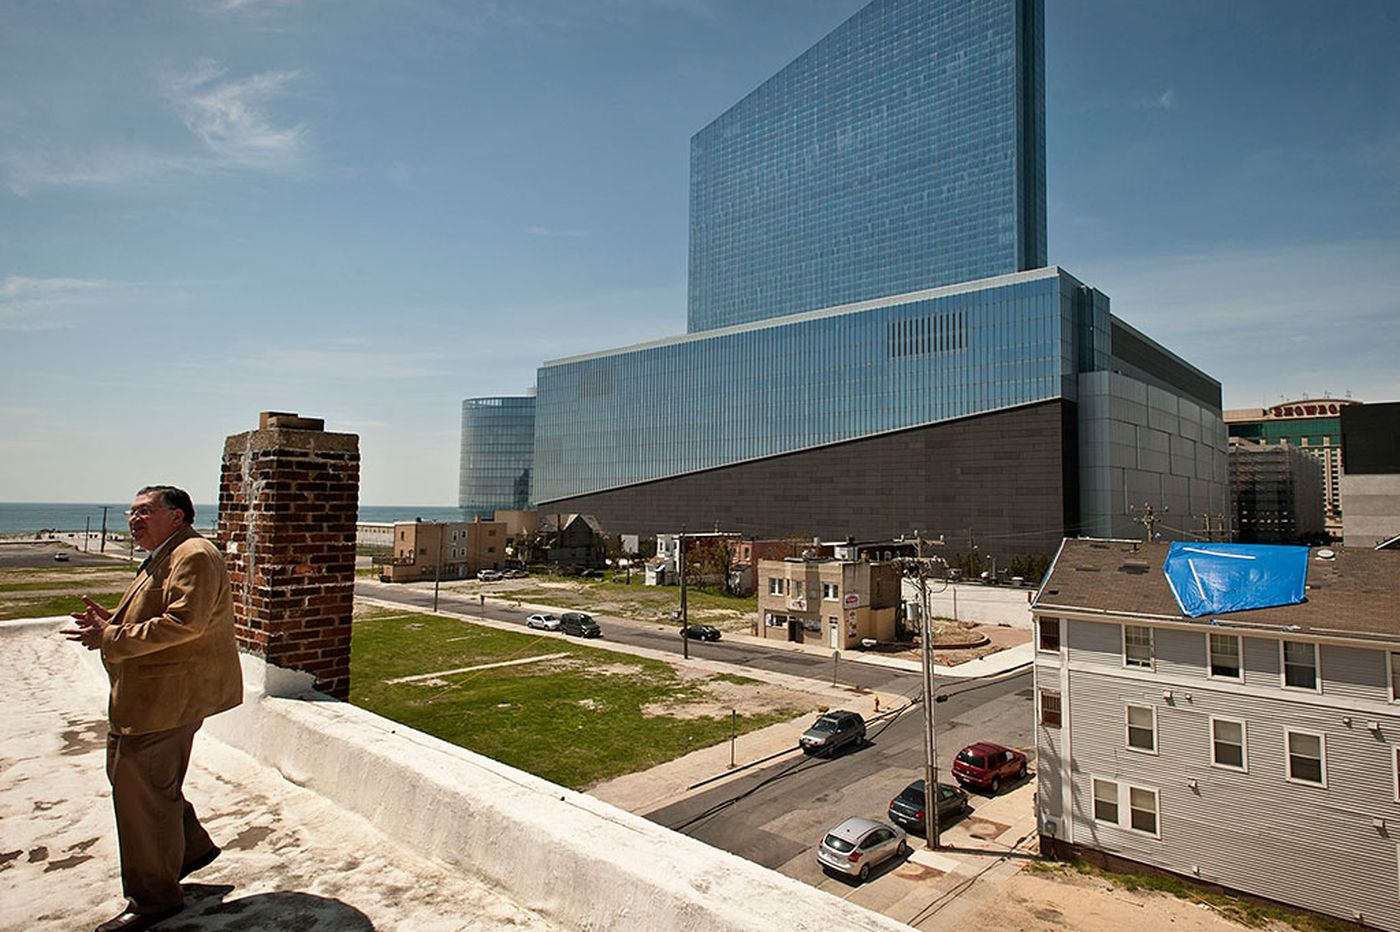 The state can't seize Atlantic City piano tuner's house with eminent domain, court rules